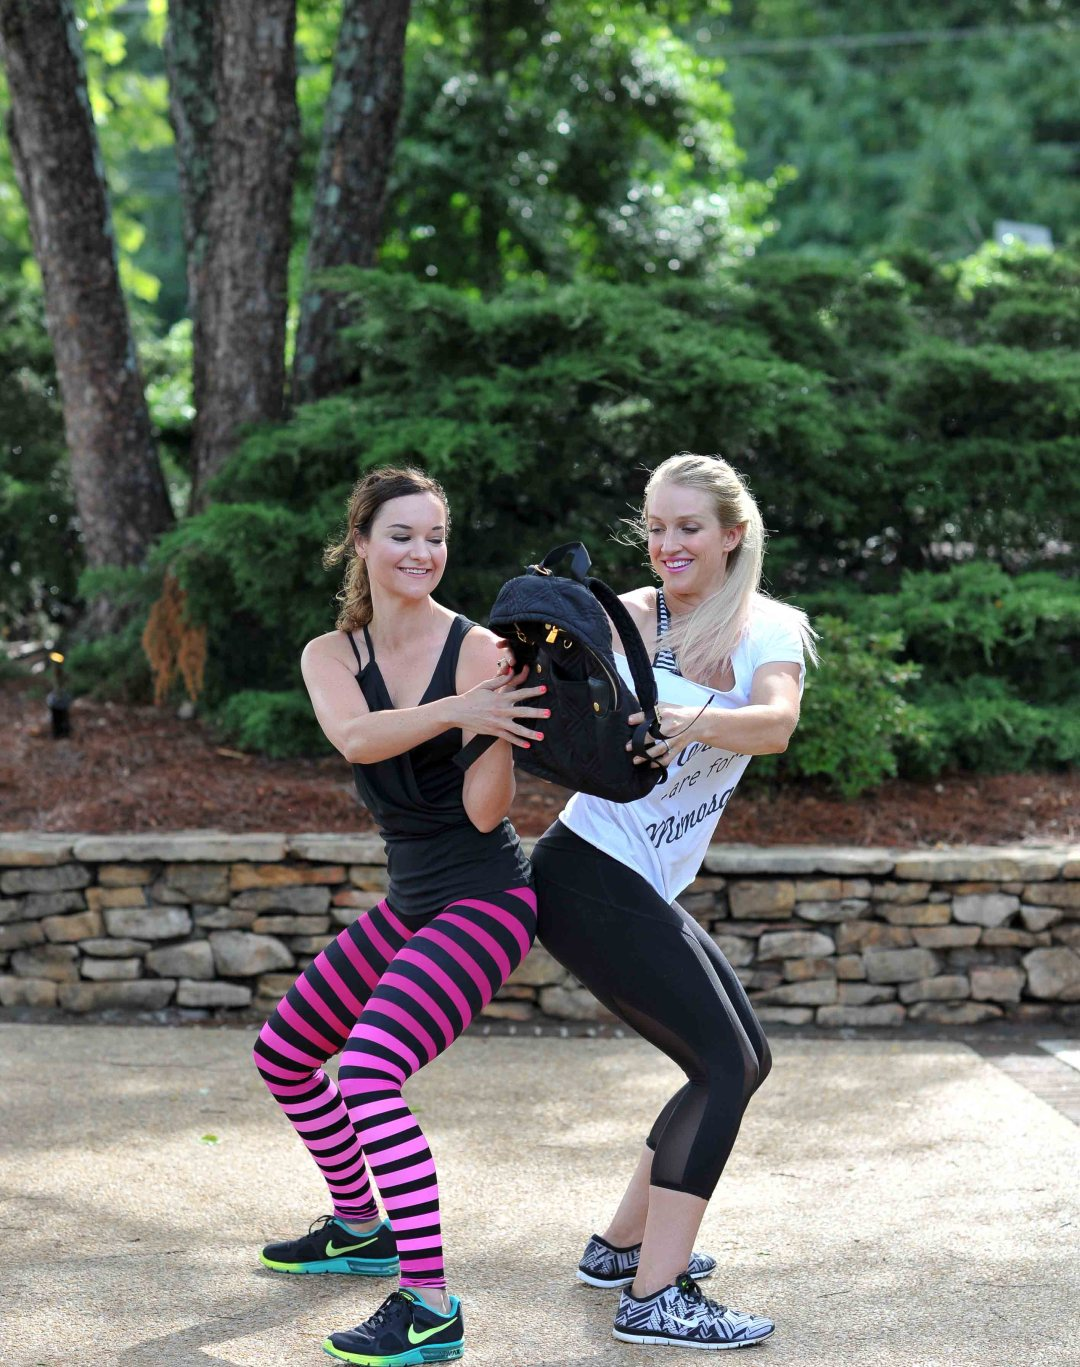 Partner Ab Workouts with Premier Protein by fitness blogger Jessica of Happily Hughes